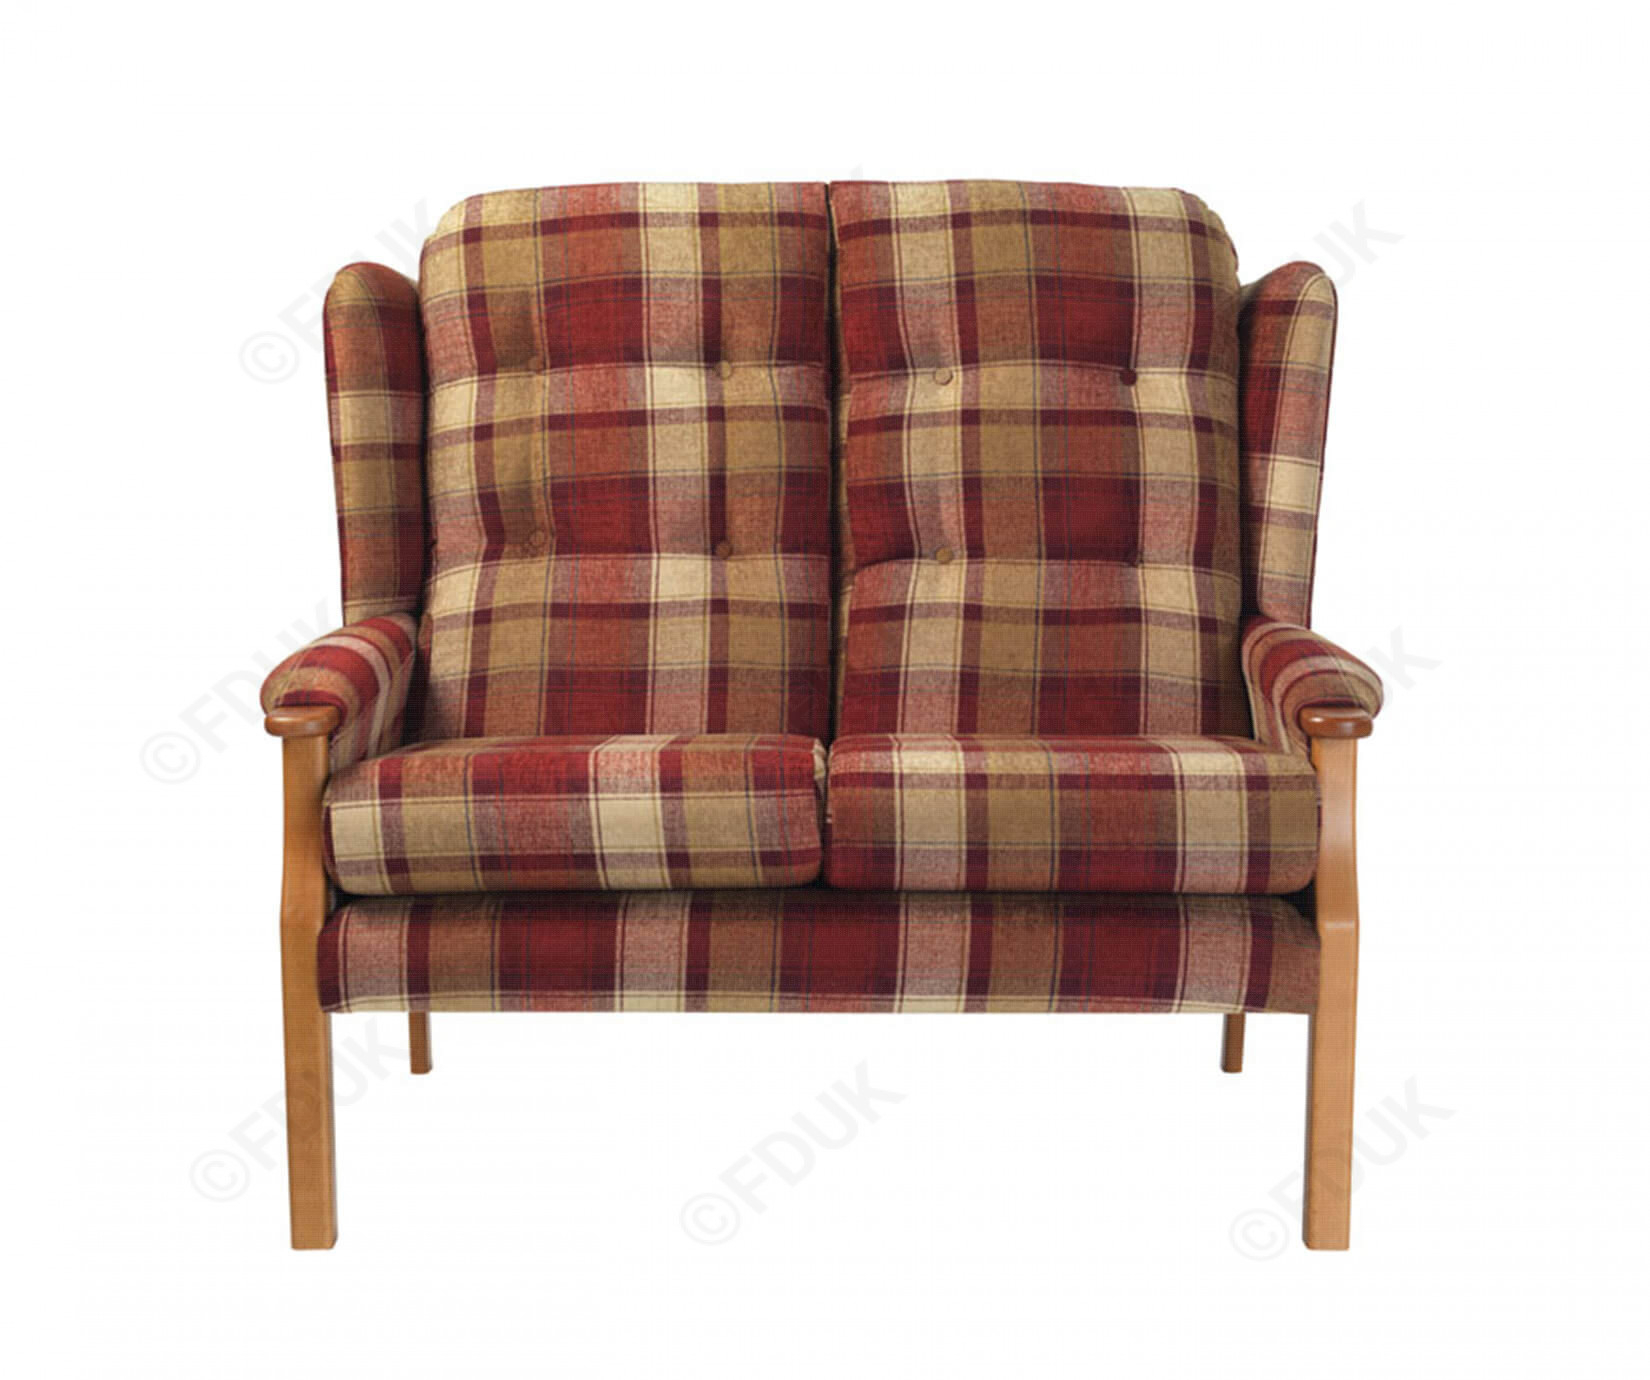 Sweet Dreams Elm | Elm Fabric 2 Seater Sofa | Furnituredirectuk Inside Elm Sofa Chairs (Image 24 of 25)